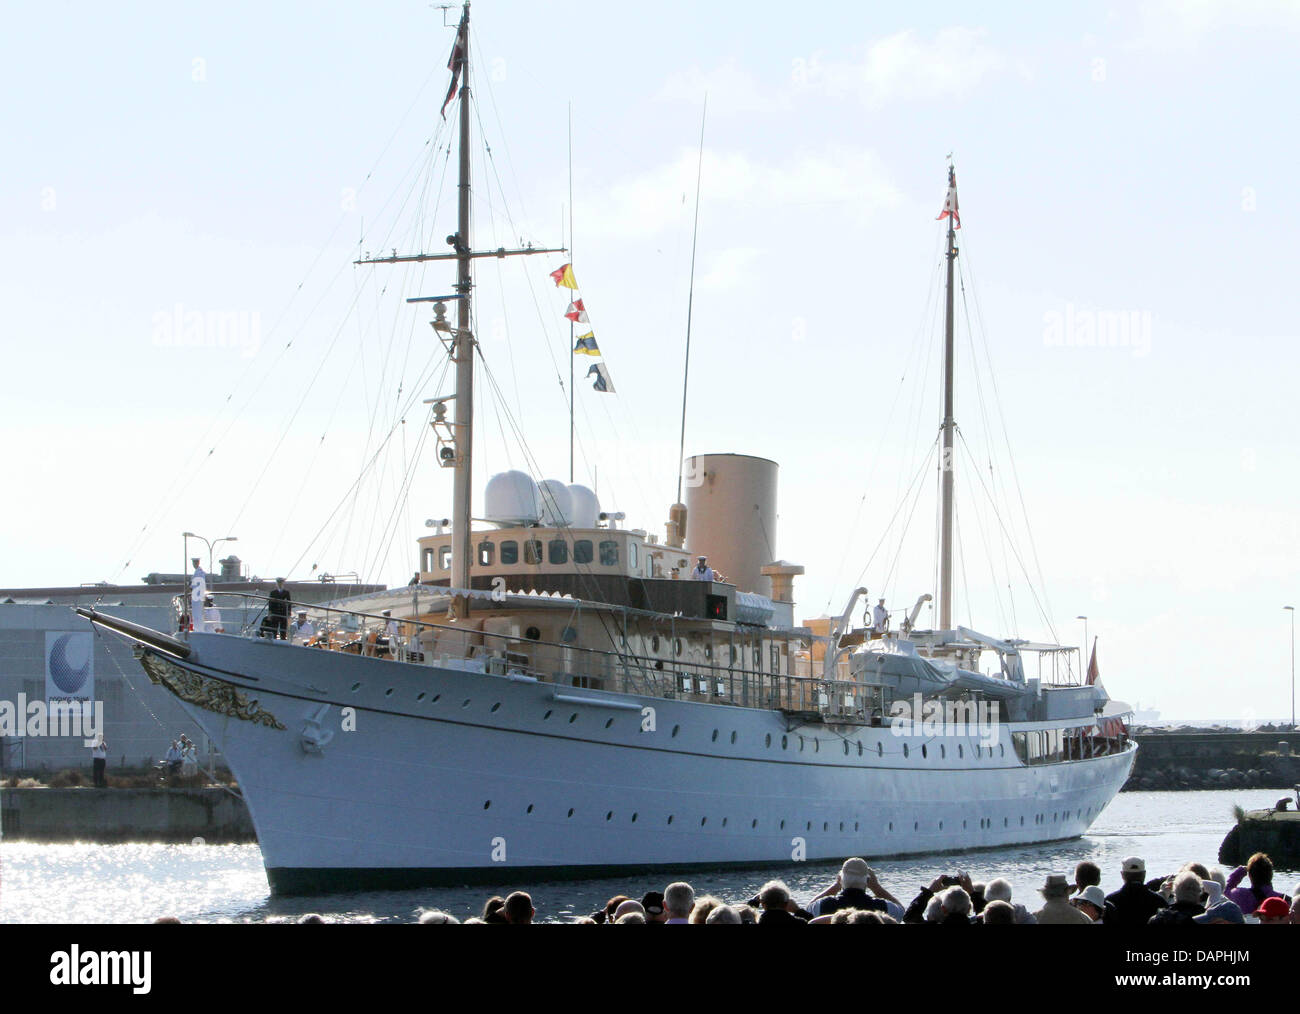 The Danish Crown Prince's family arrive with the royal yacht Dannebrog in Skagen, Denmark, during their traditional - Stock Image